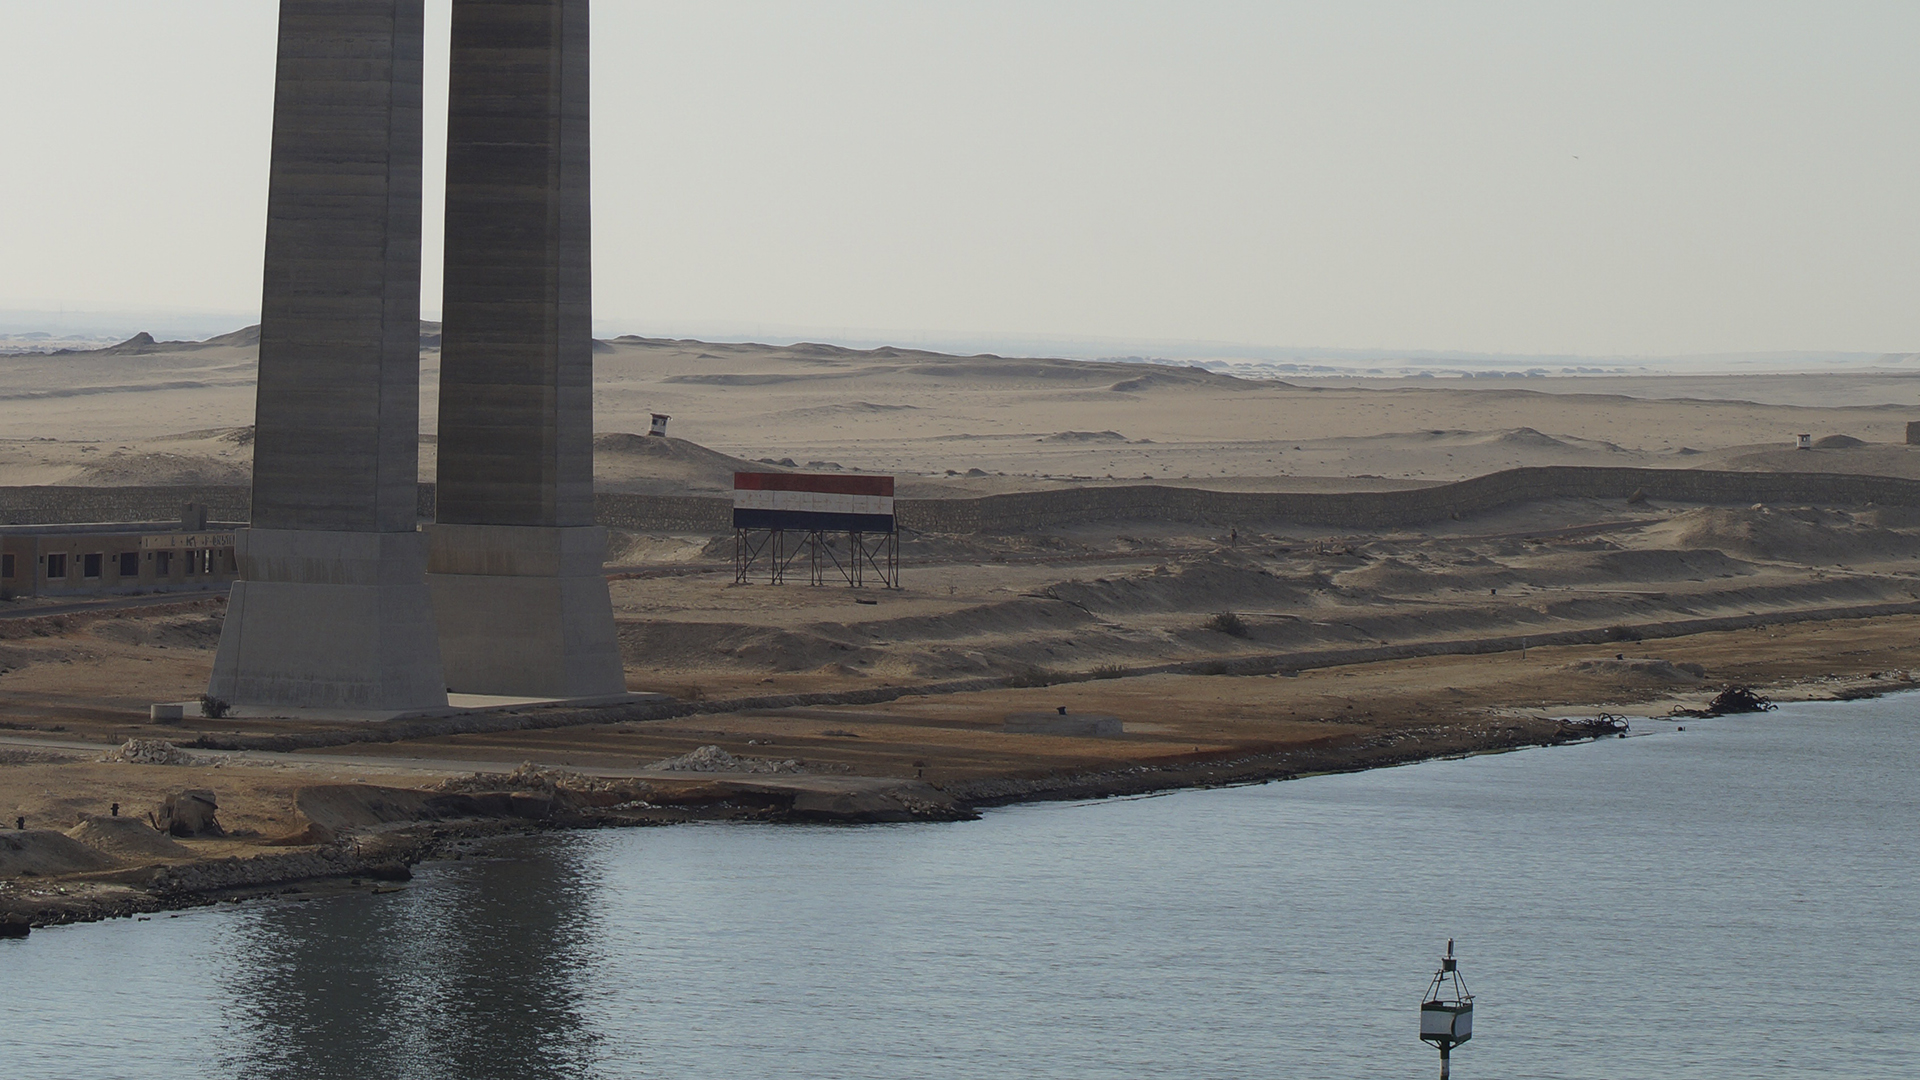 Suez Canal remain blocked for eight years